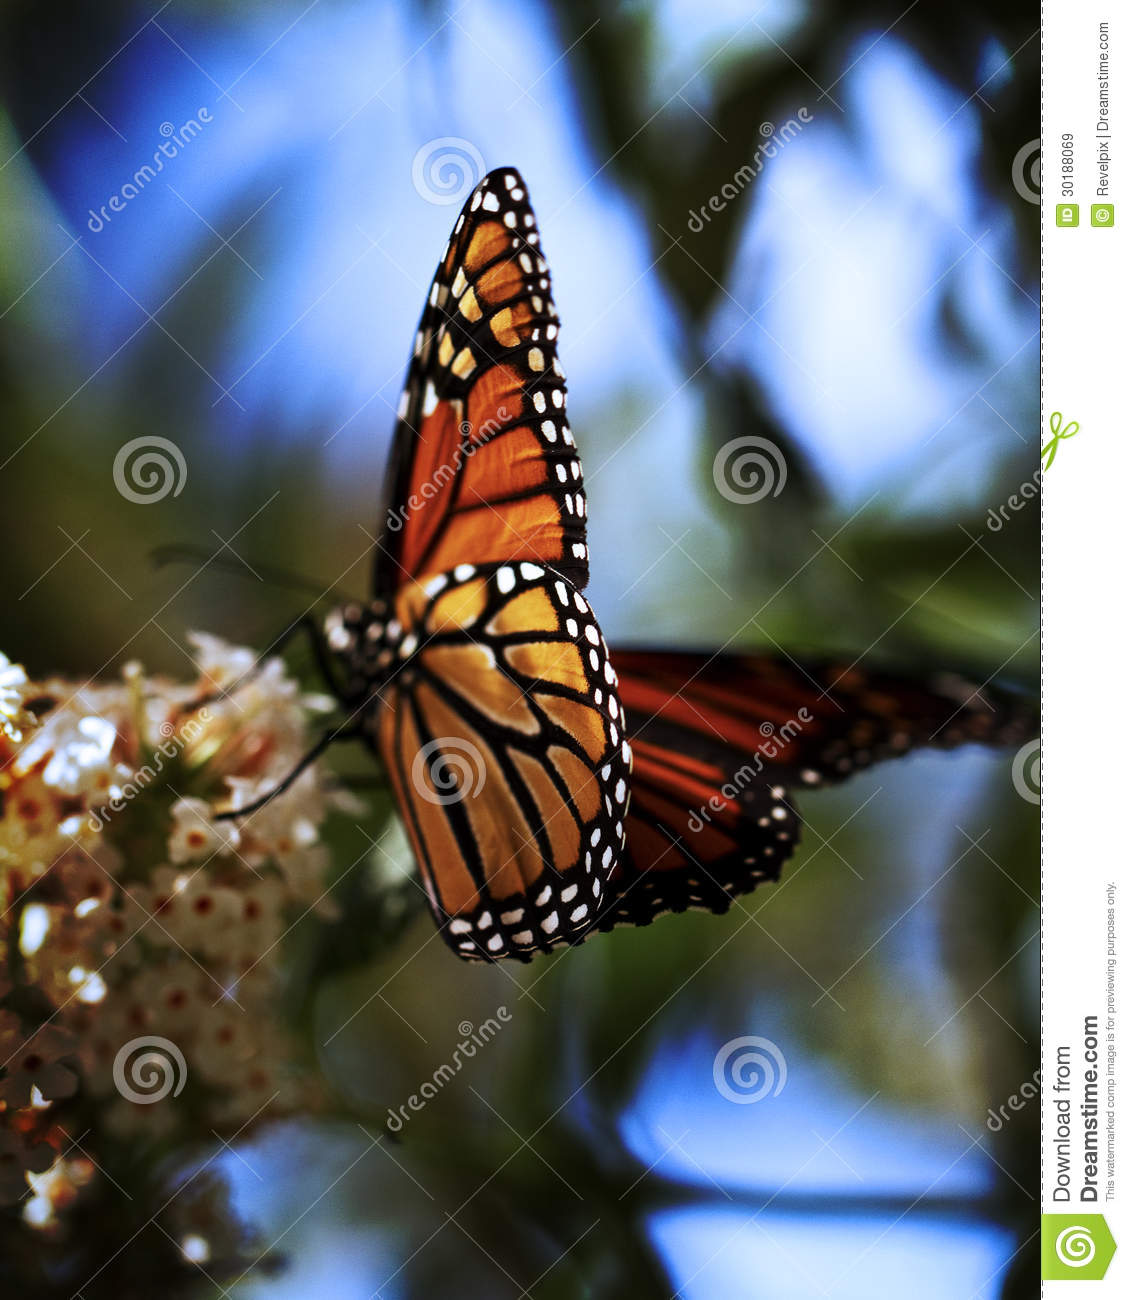 Butterfly Close Up Royalty Free Stock Images - Image: 30188069